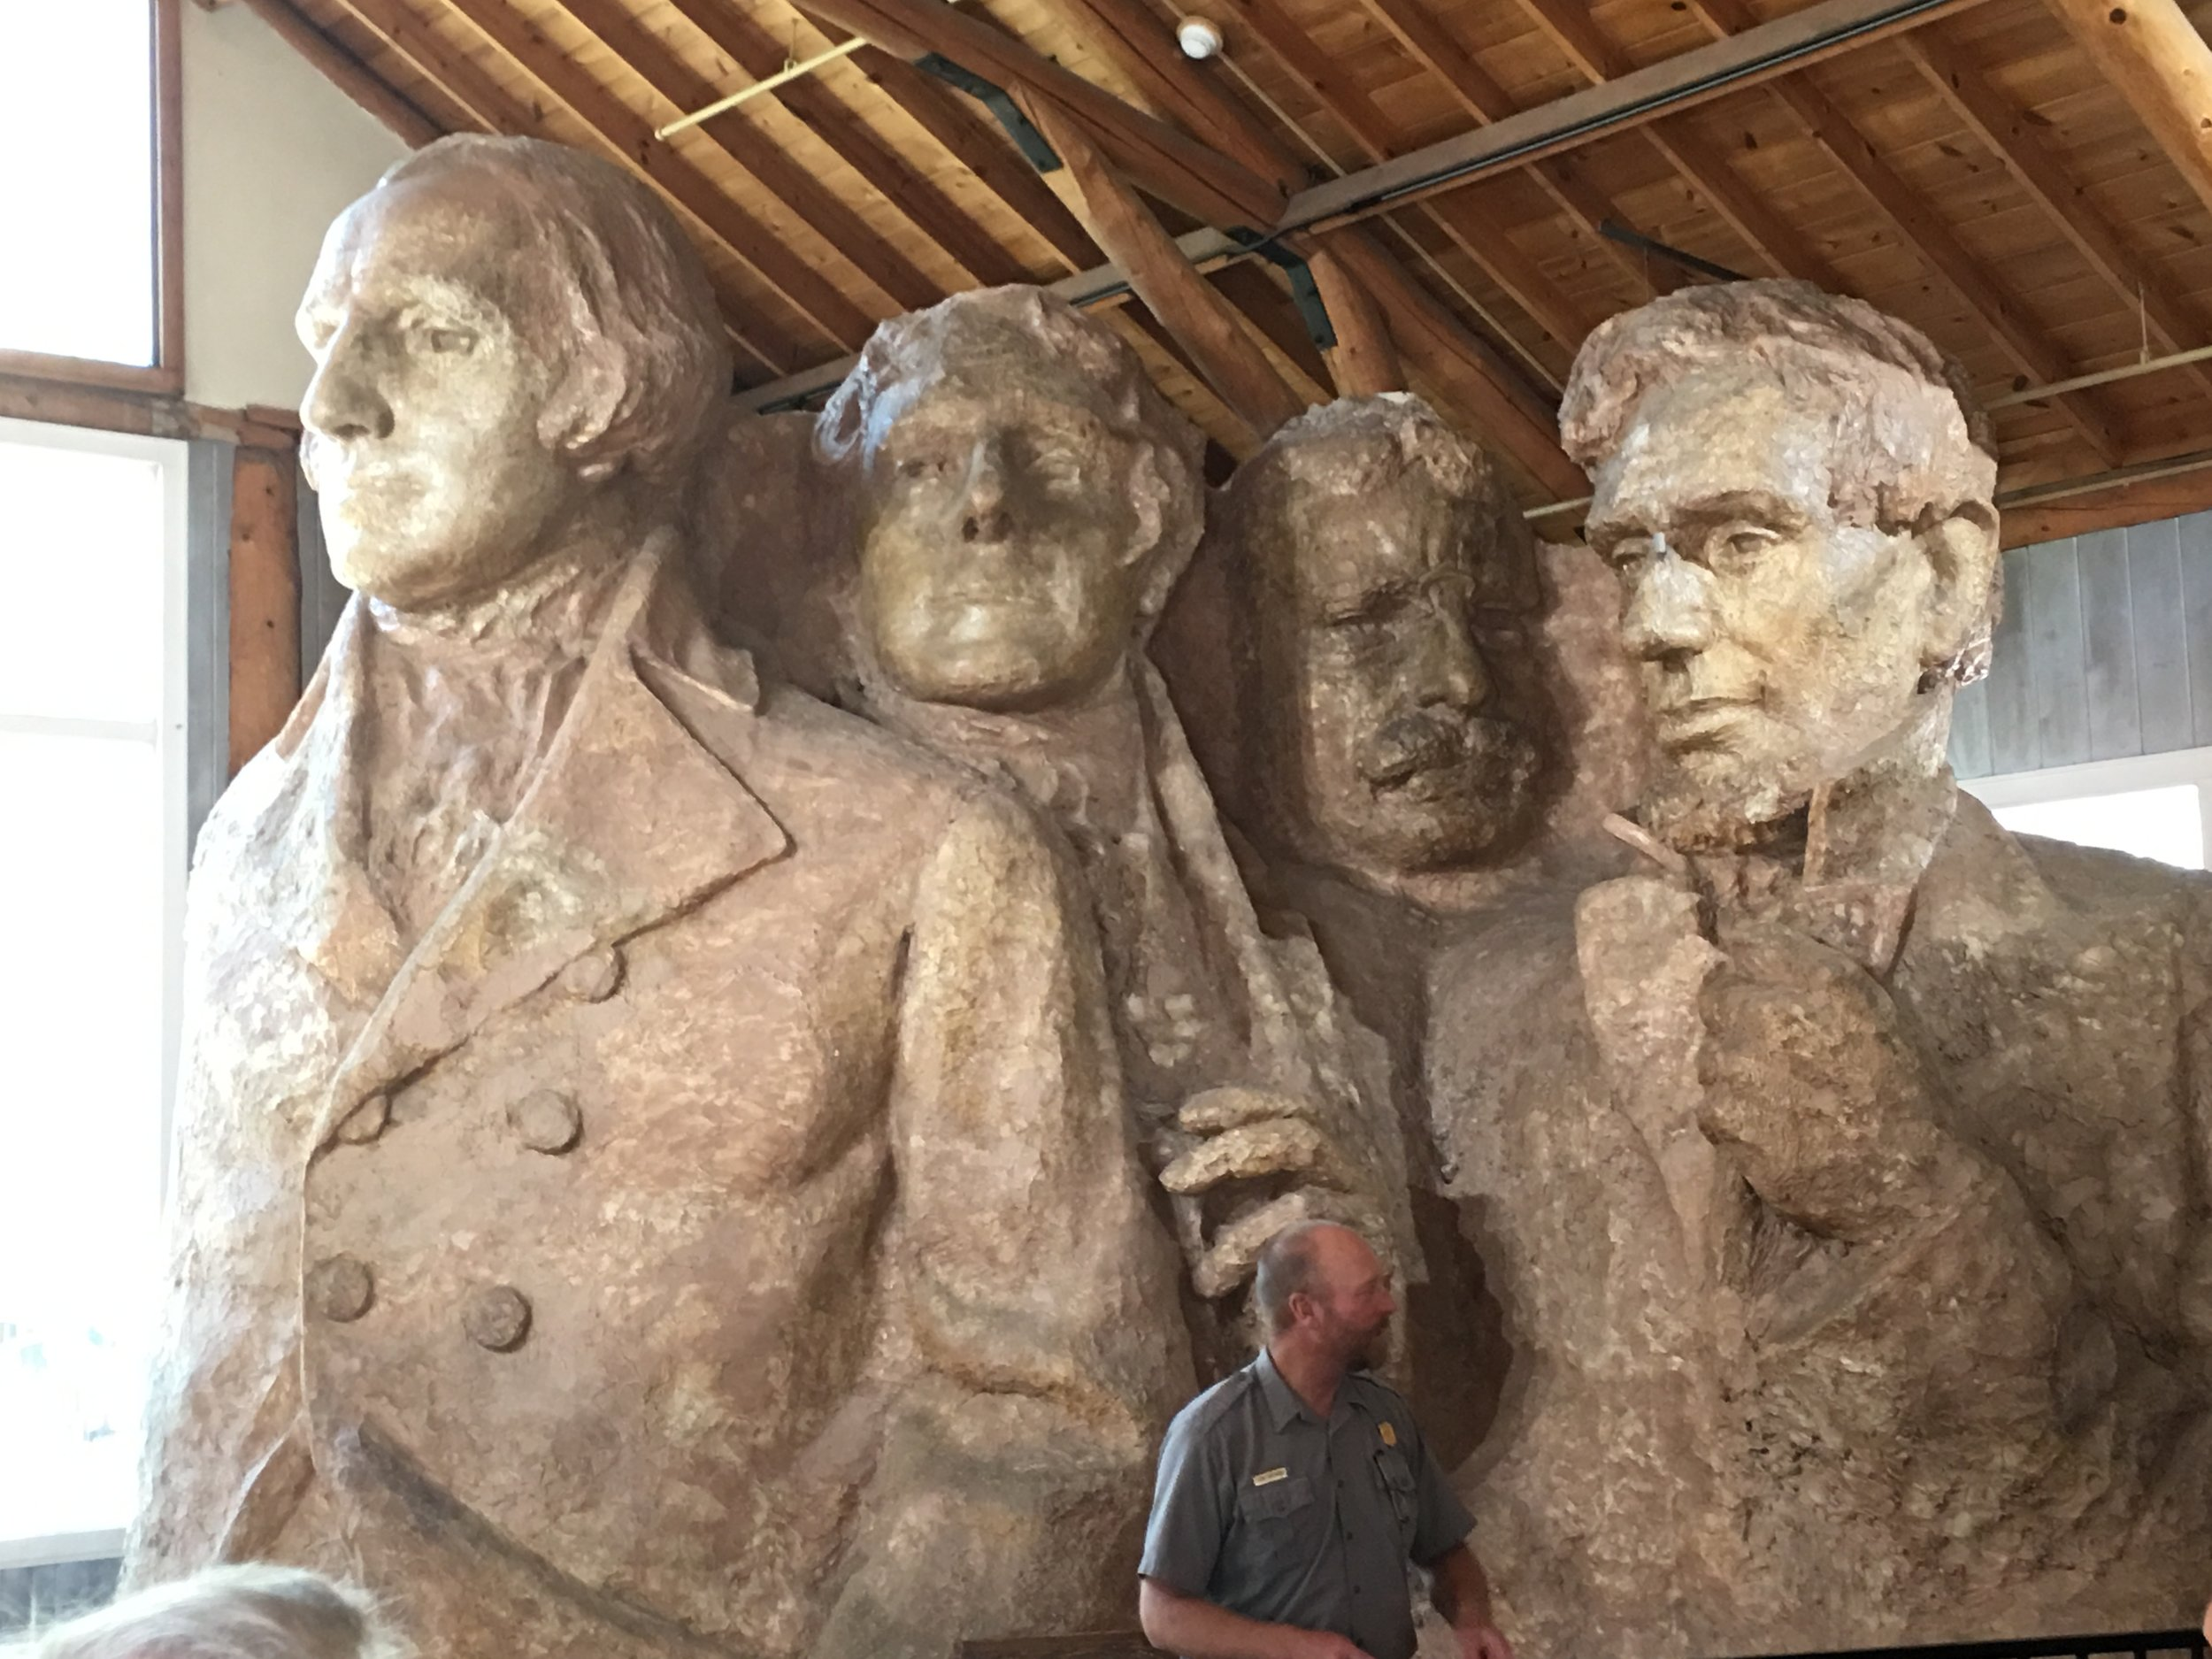 Originally the plan was to carve the Presidents head to waist as shown in the picture of the plan model. Borglum and the team to were forced reduce the scope by funding constraints and the result is the heads we see today. there was even an attempt to add Susan B. Anthony to the project but again lack of funding got in the way.